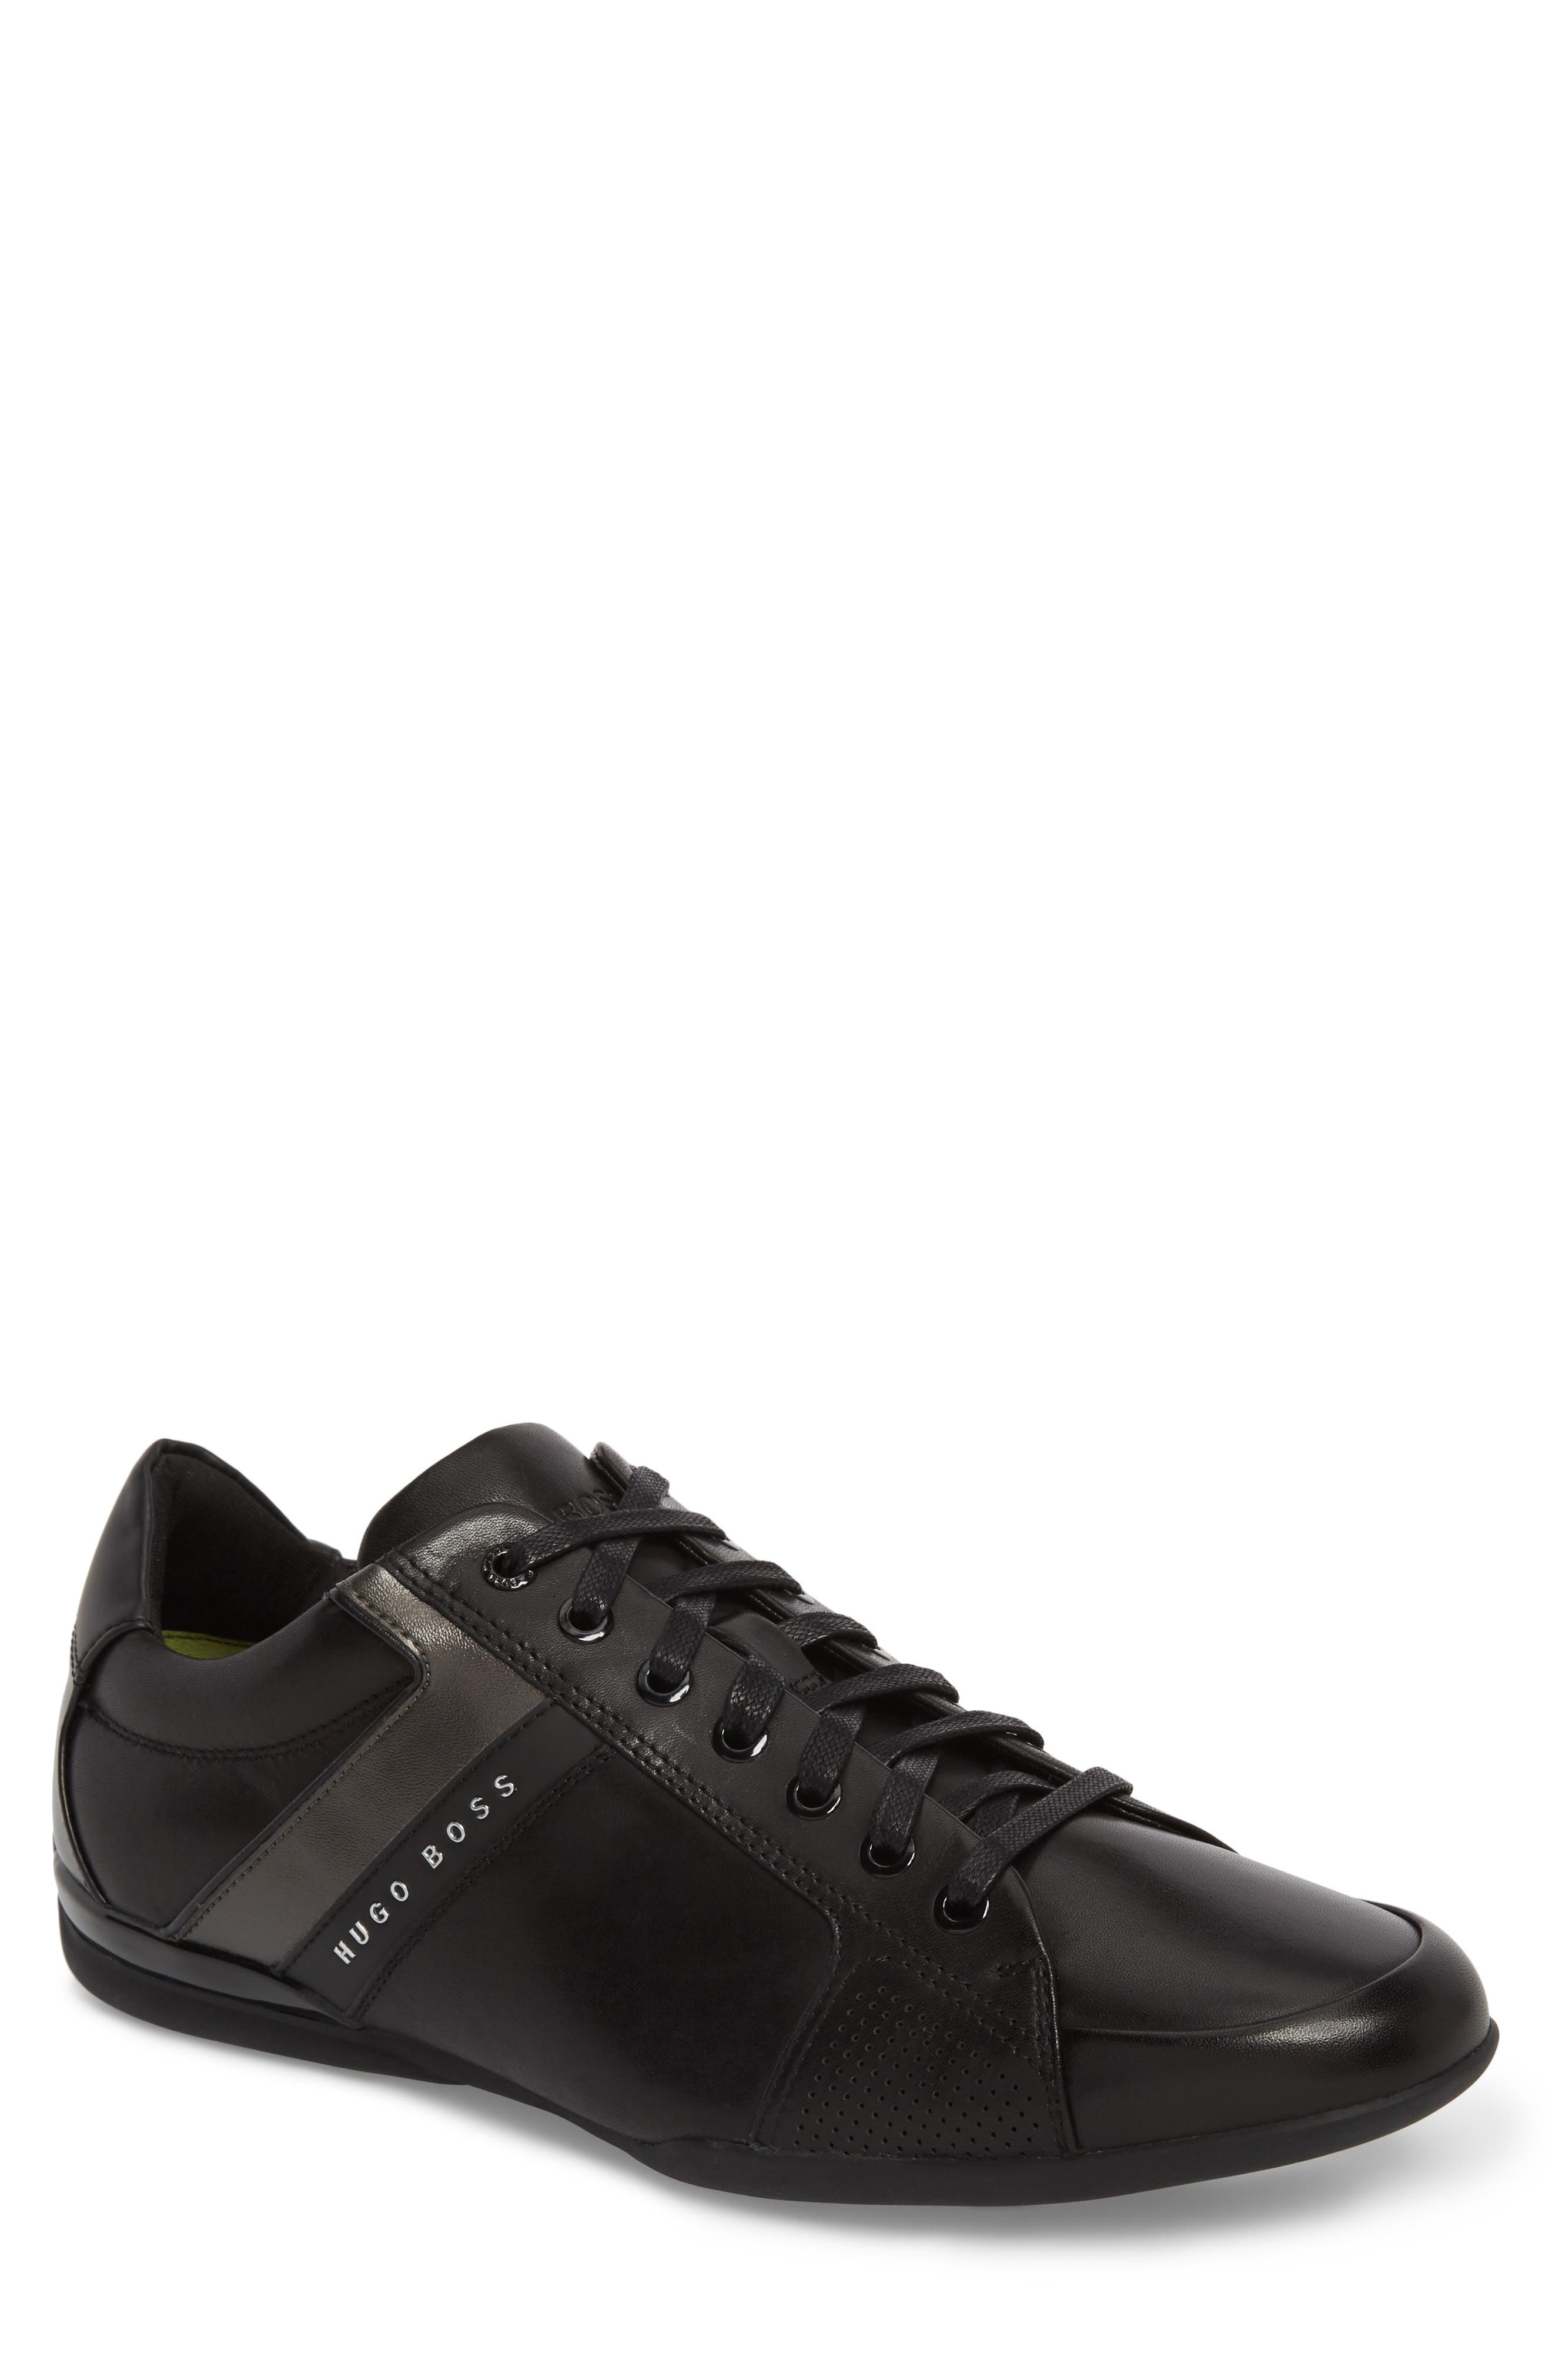 Space Lowp Lux Sneaker,                         Main,                         color, 001